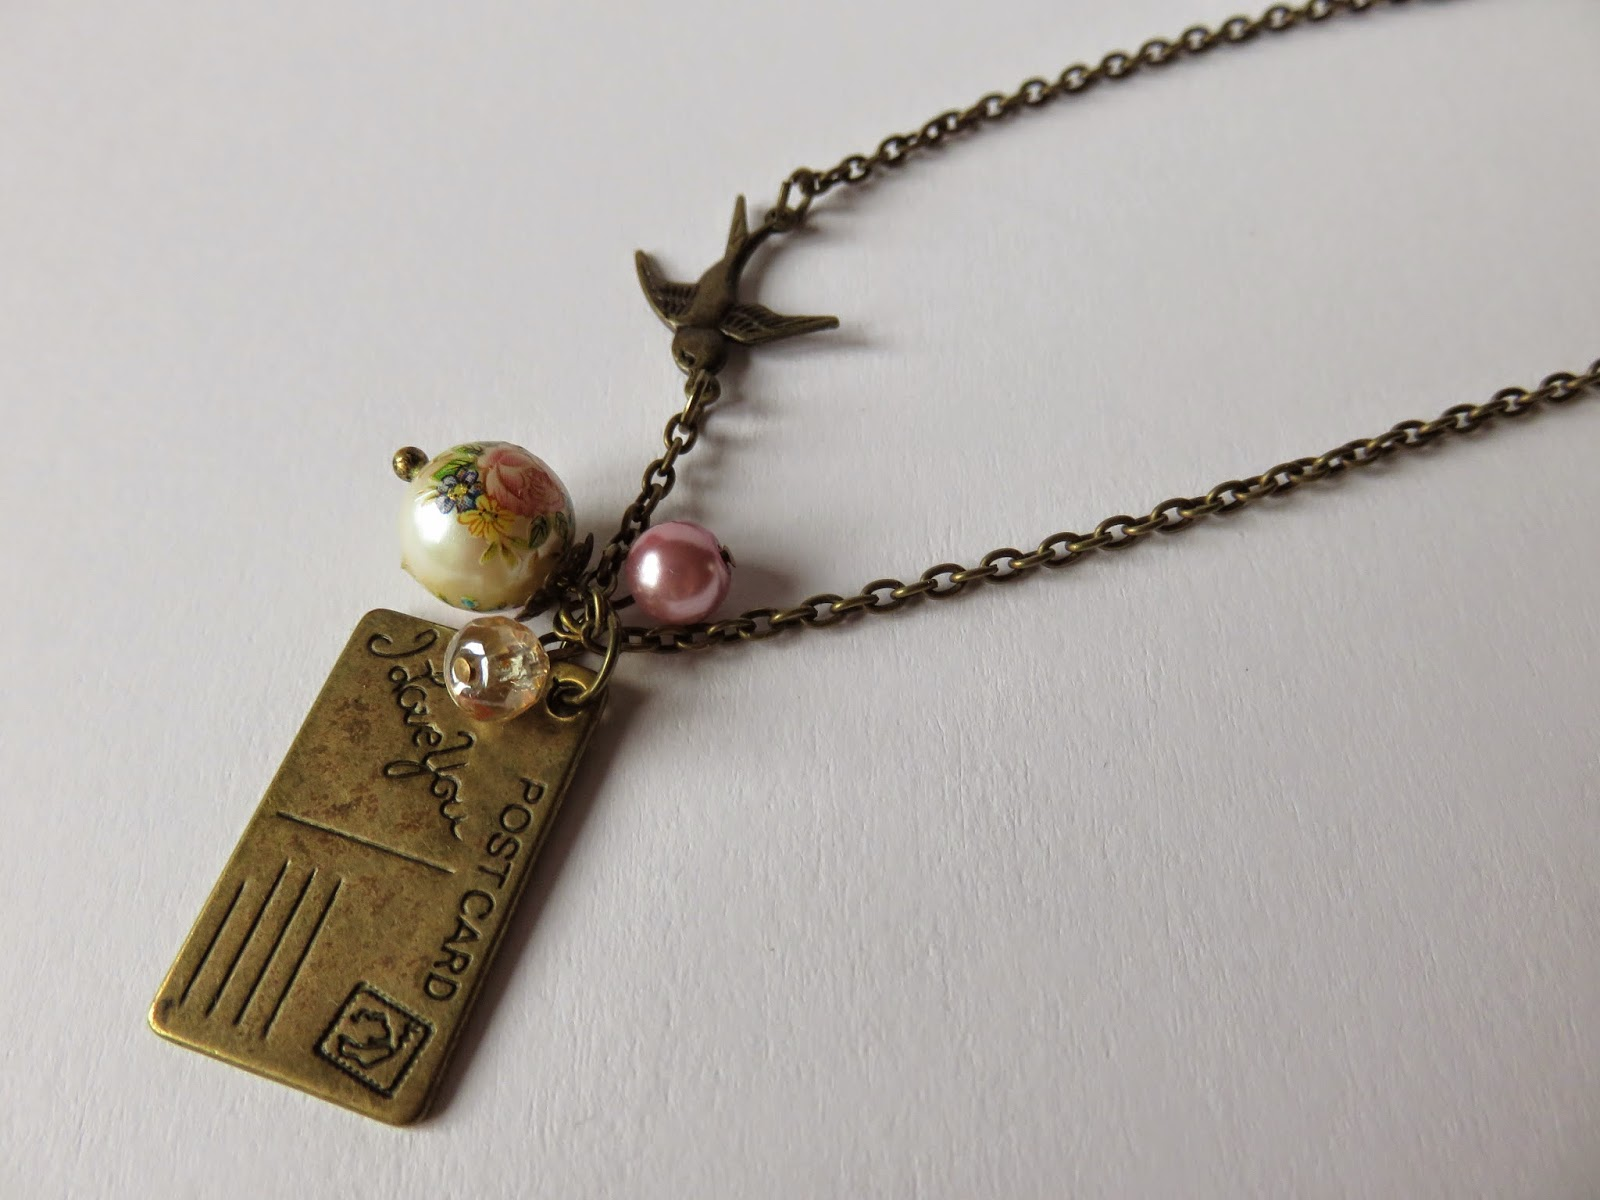 necklace art swallow letters ketting kunst zwaluw brief